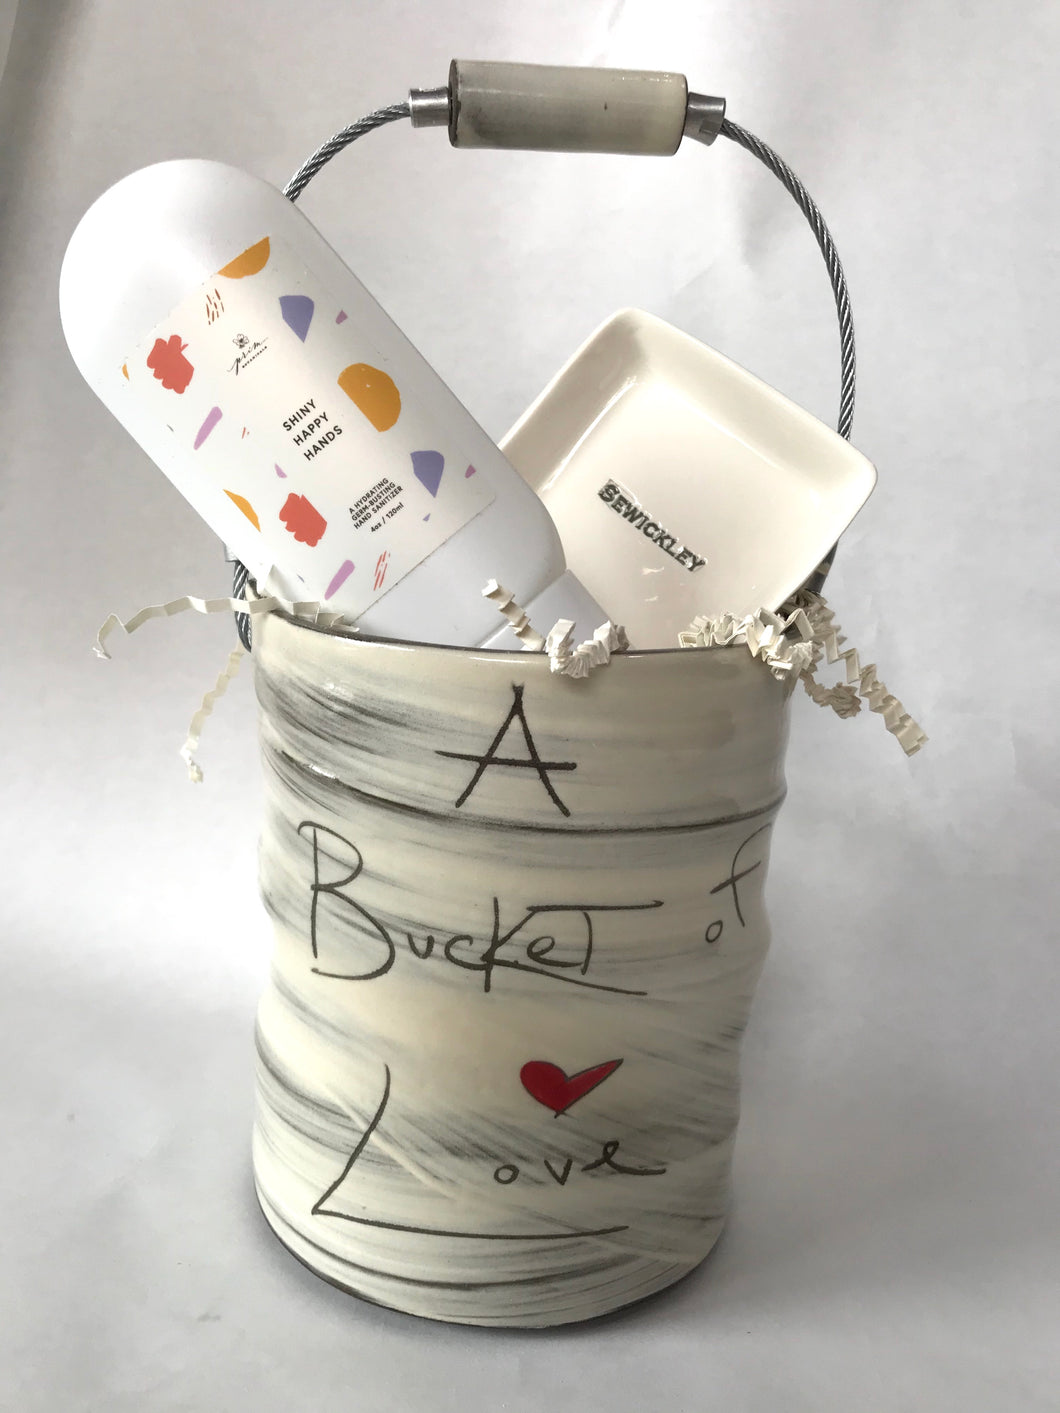 A Bucket of Love Bundle